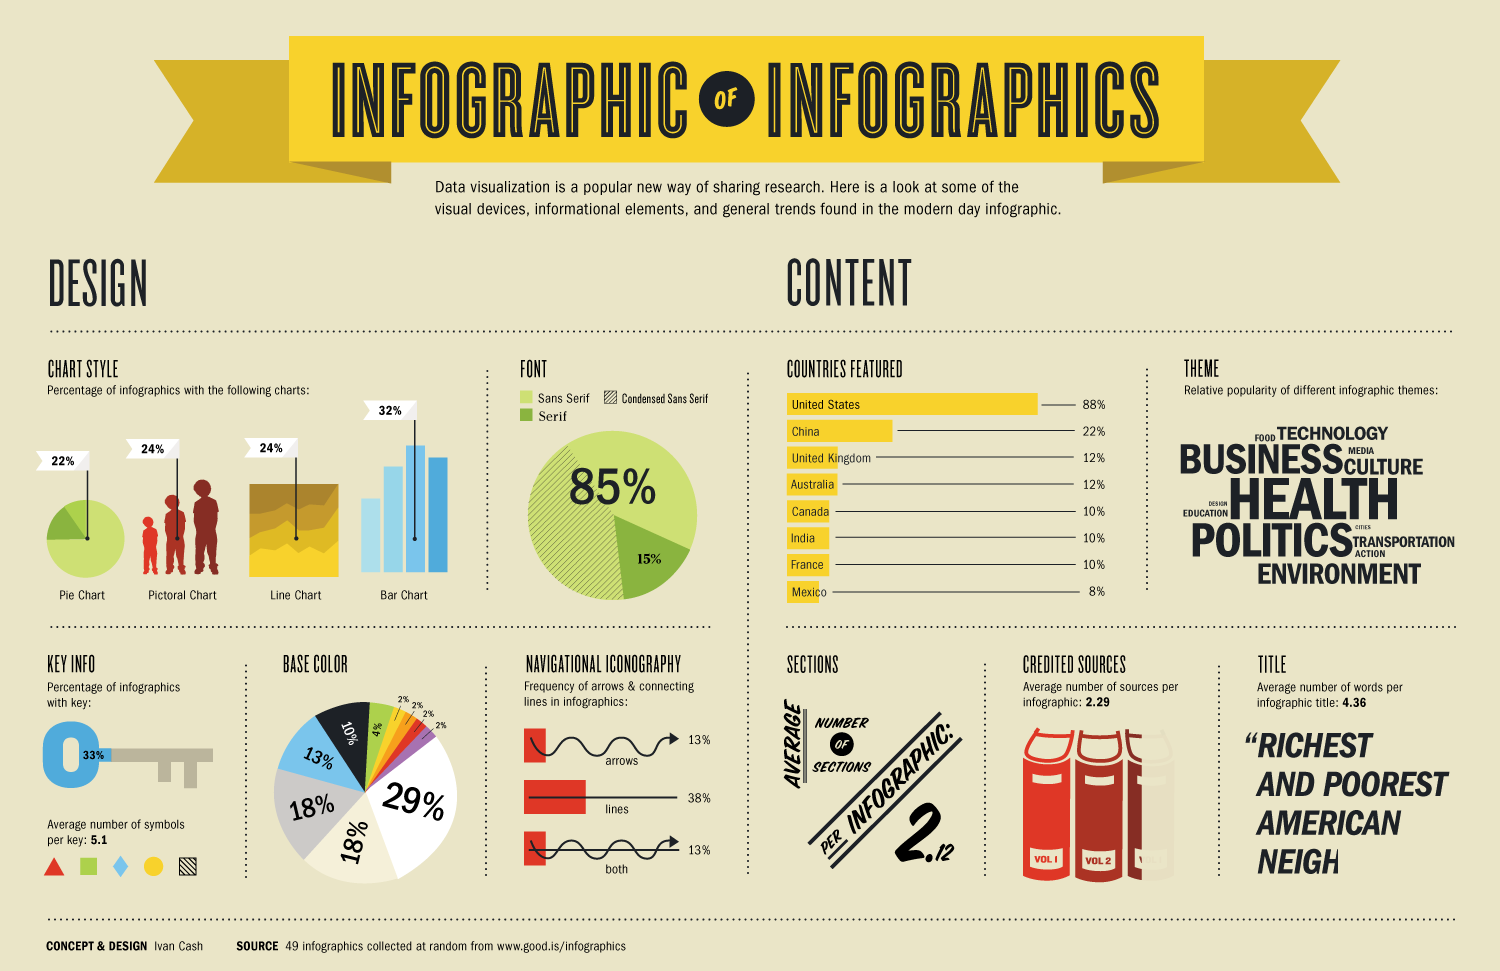 dnxvj1 Designing Interesting Infographics   Tips and Tricks